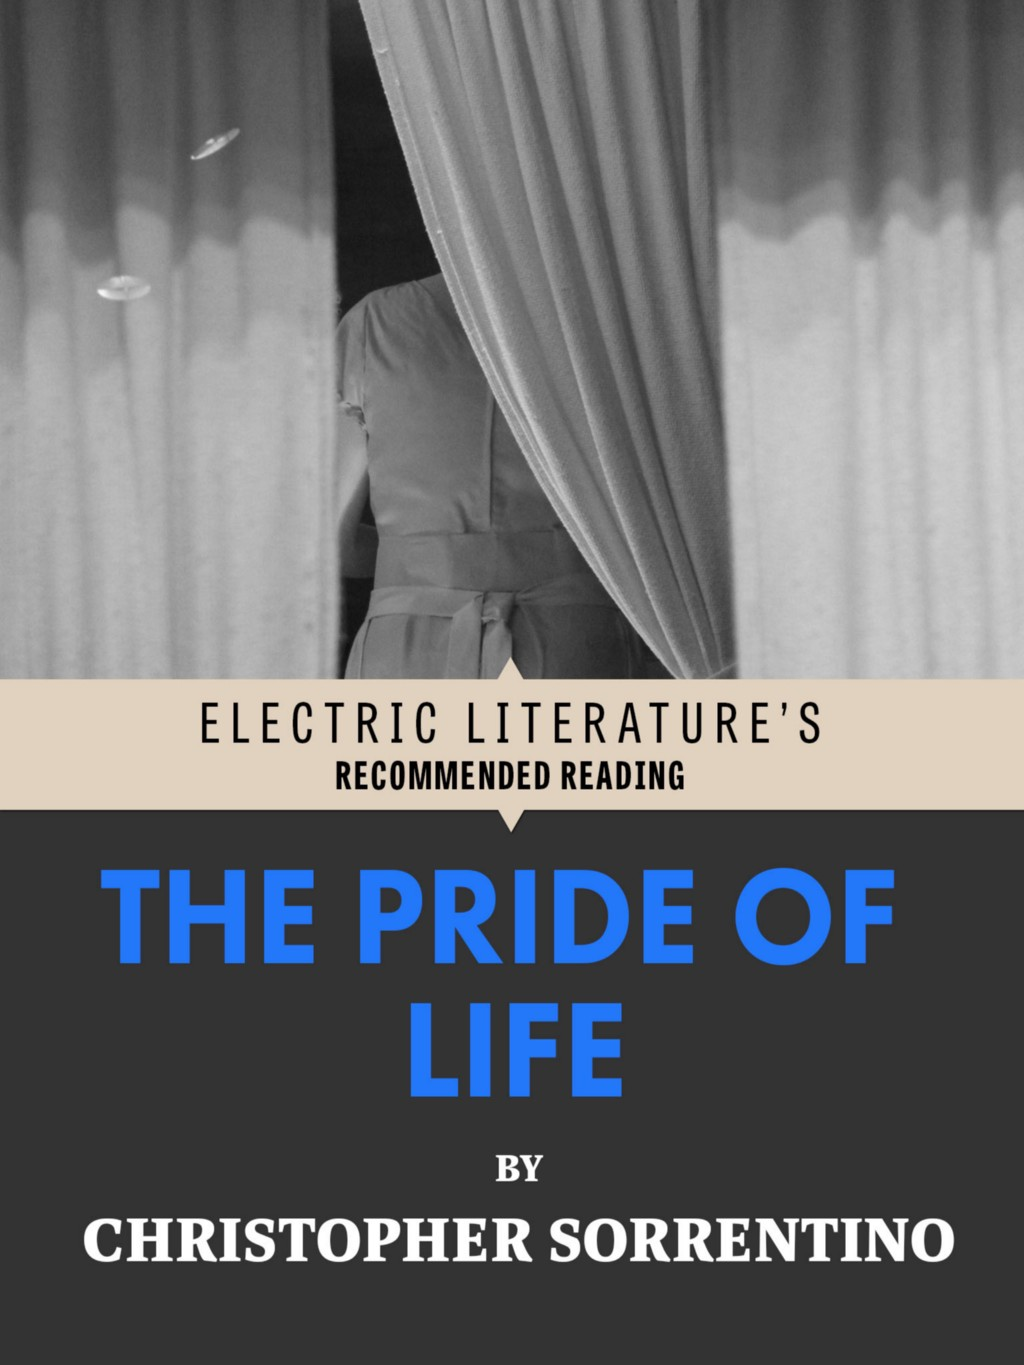 Page 283 – Electric Literature